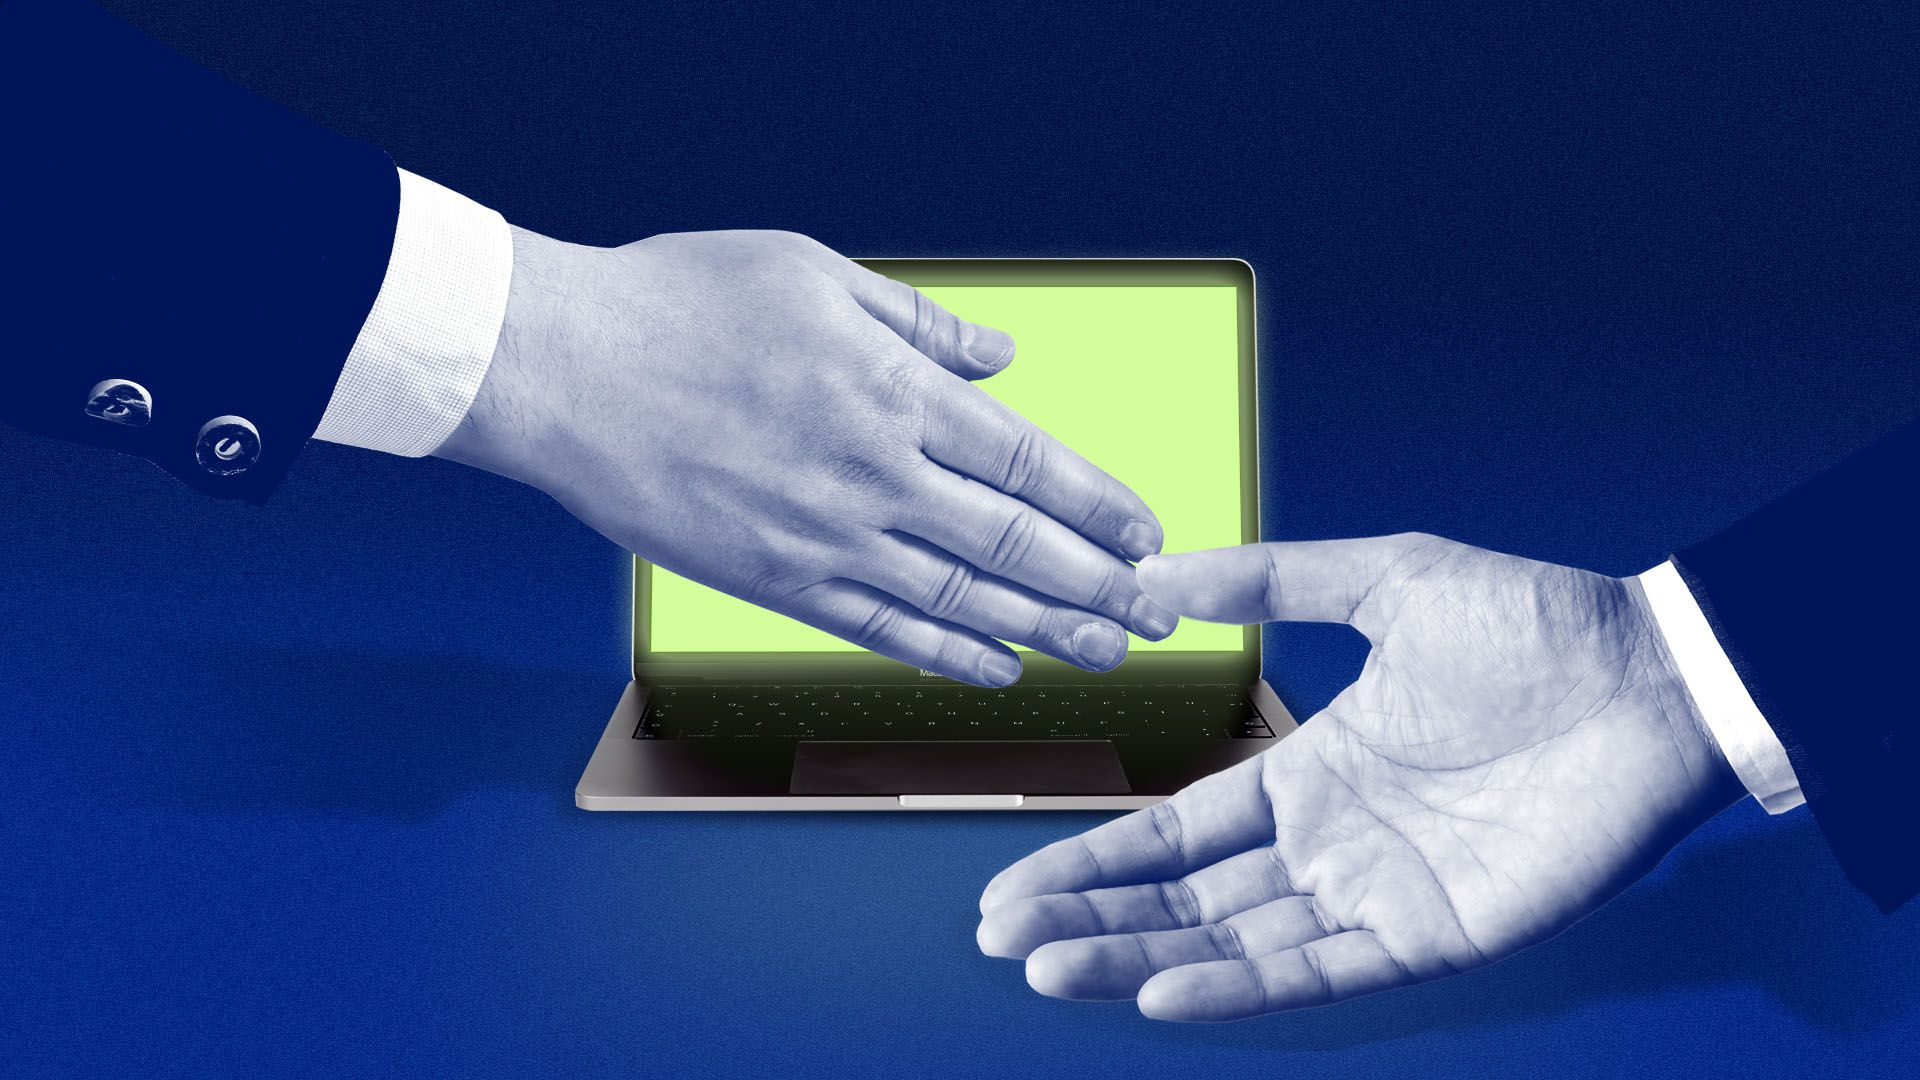 Illustration of a one hand trying to cover a laptop screen while another presents it to the viewer